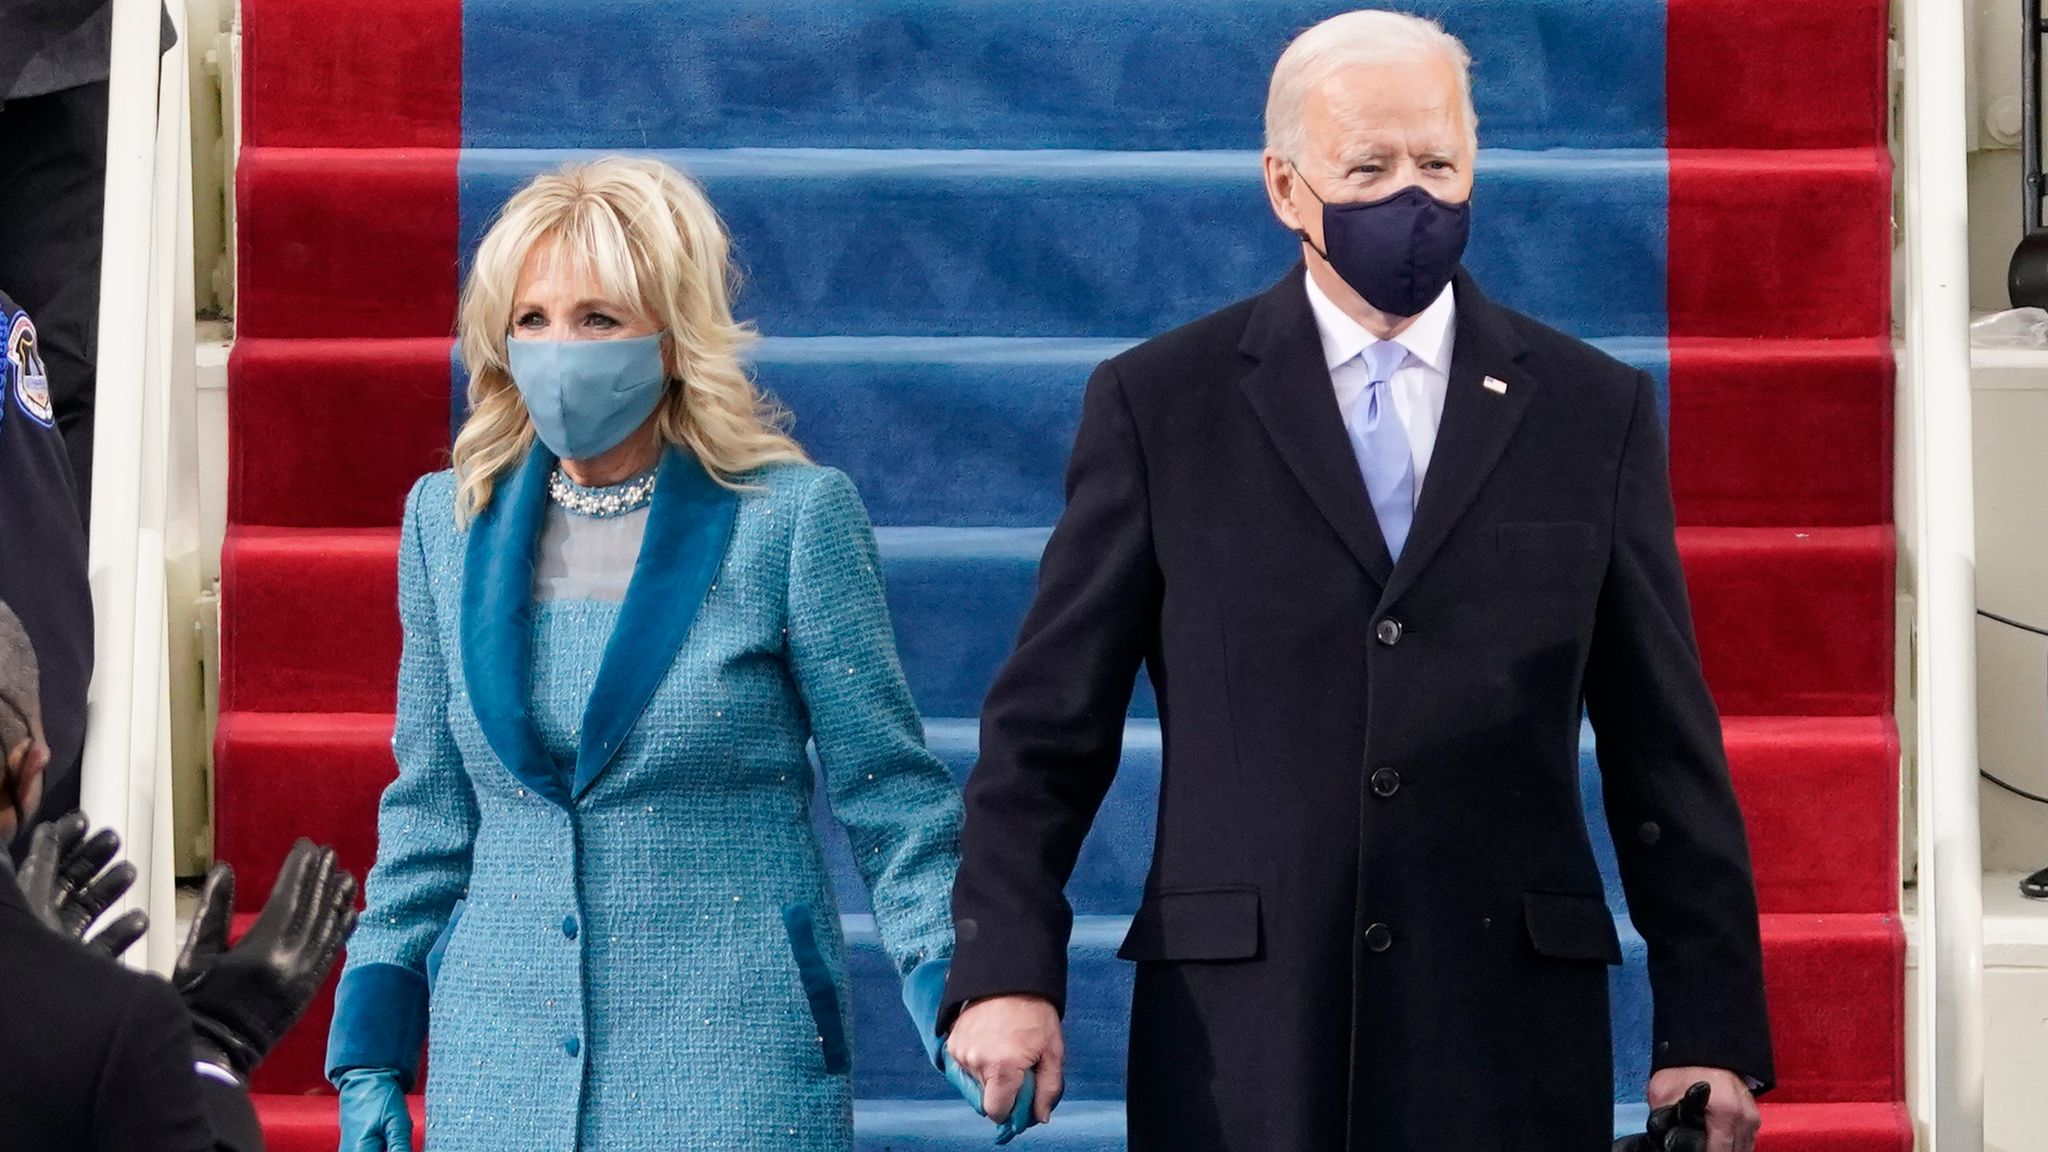 Biden inauguration news live: Joe Biden sworn in as president and about to  address nation | US News | Sky News